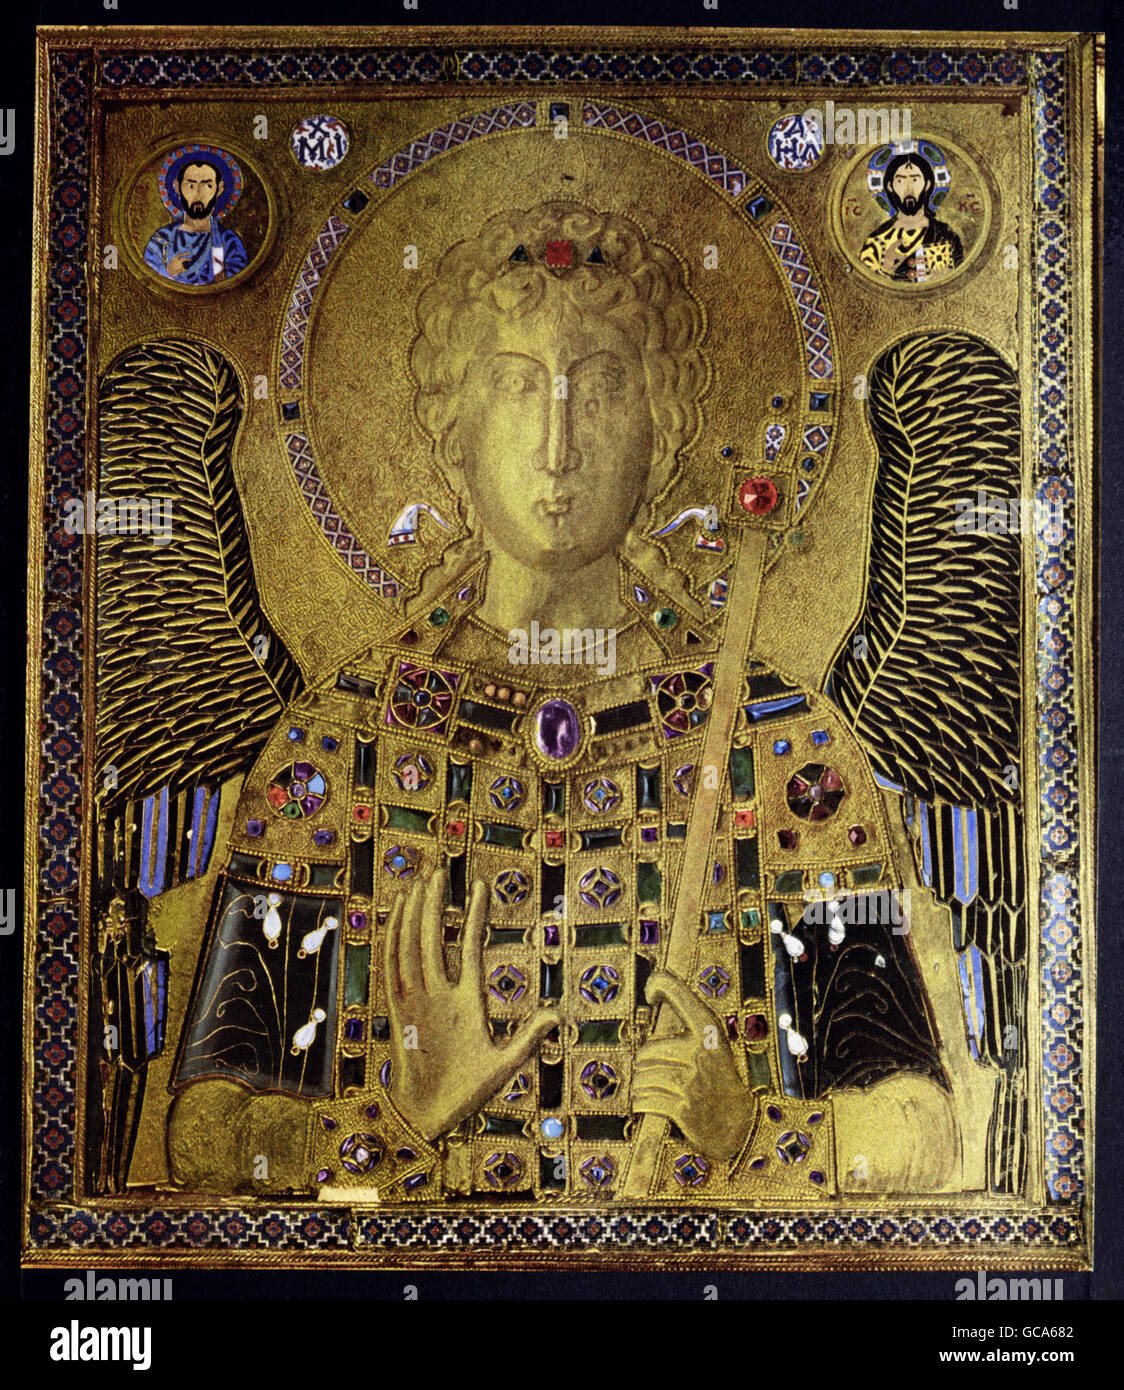 fine arts, middle ages, Byzantine Art, painting, icon, Archangel Michael, Constantinople, 10th century, Tresoro - Stock Image